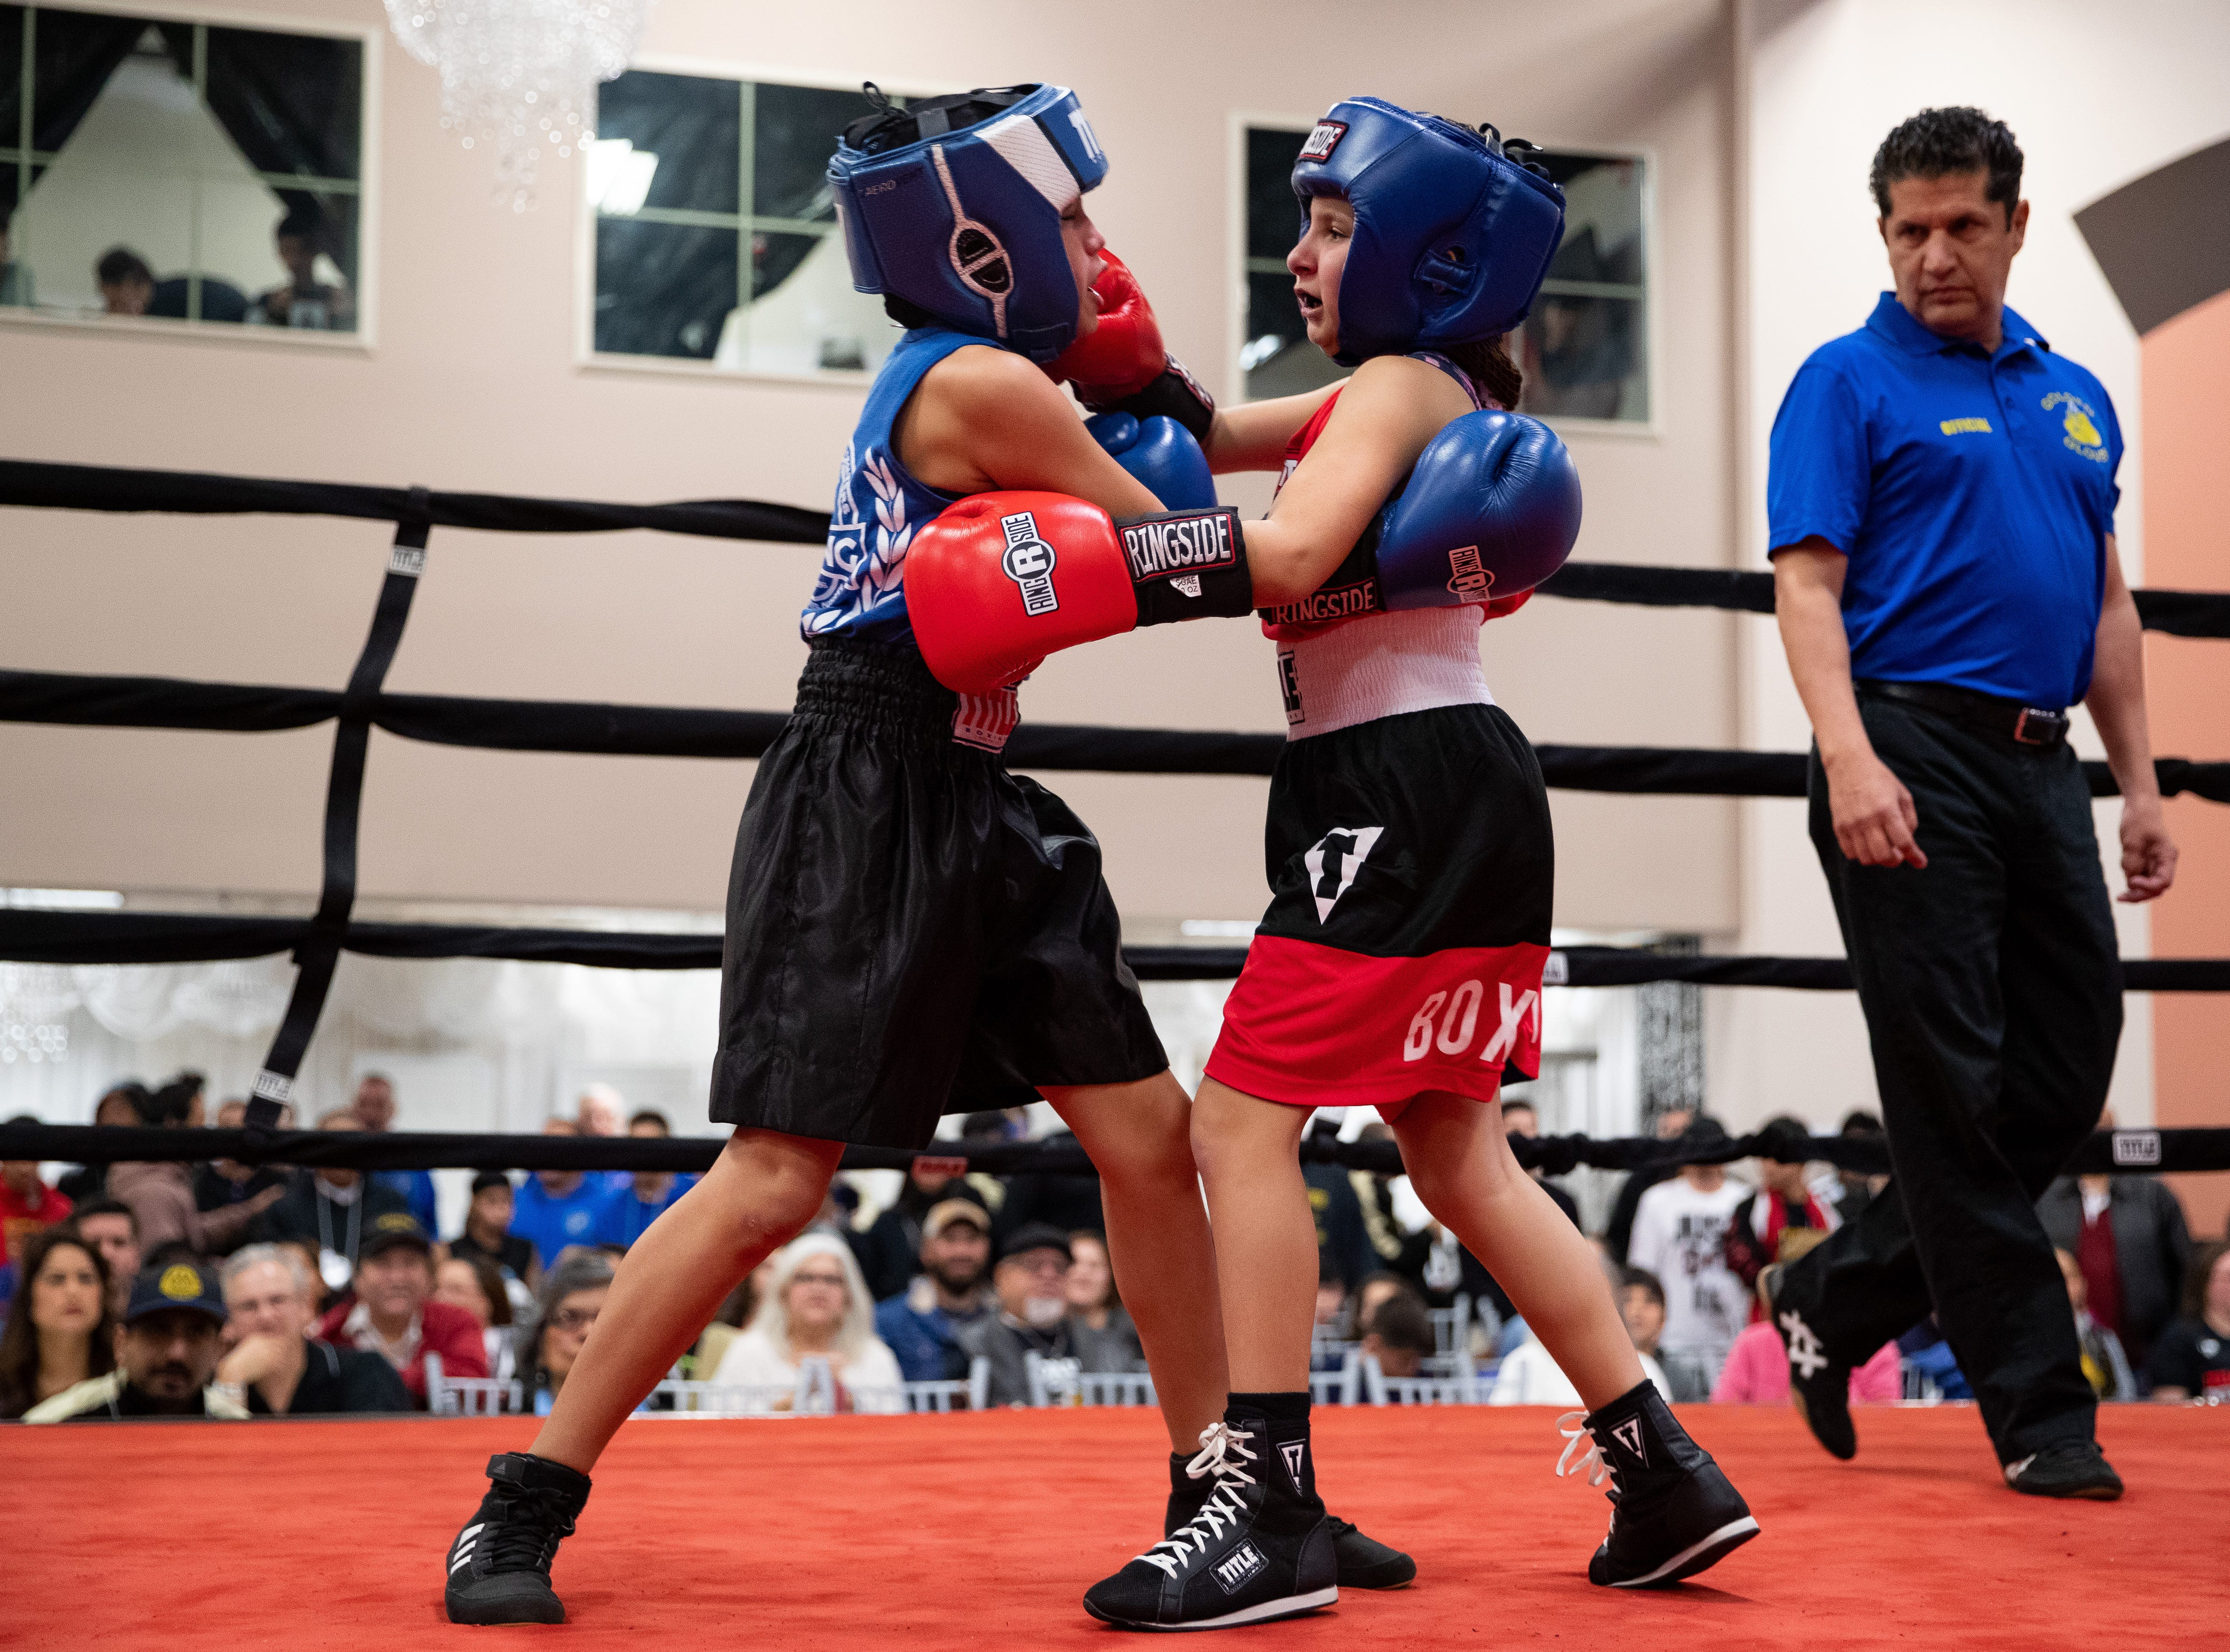 Jinna Adame fights Starr Cruz during the regional golden gloves tournament at the Valencia on Saturday, Feb. 9, 2019.